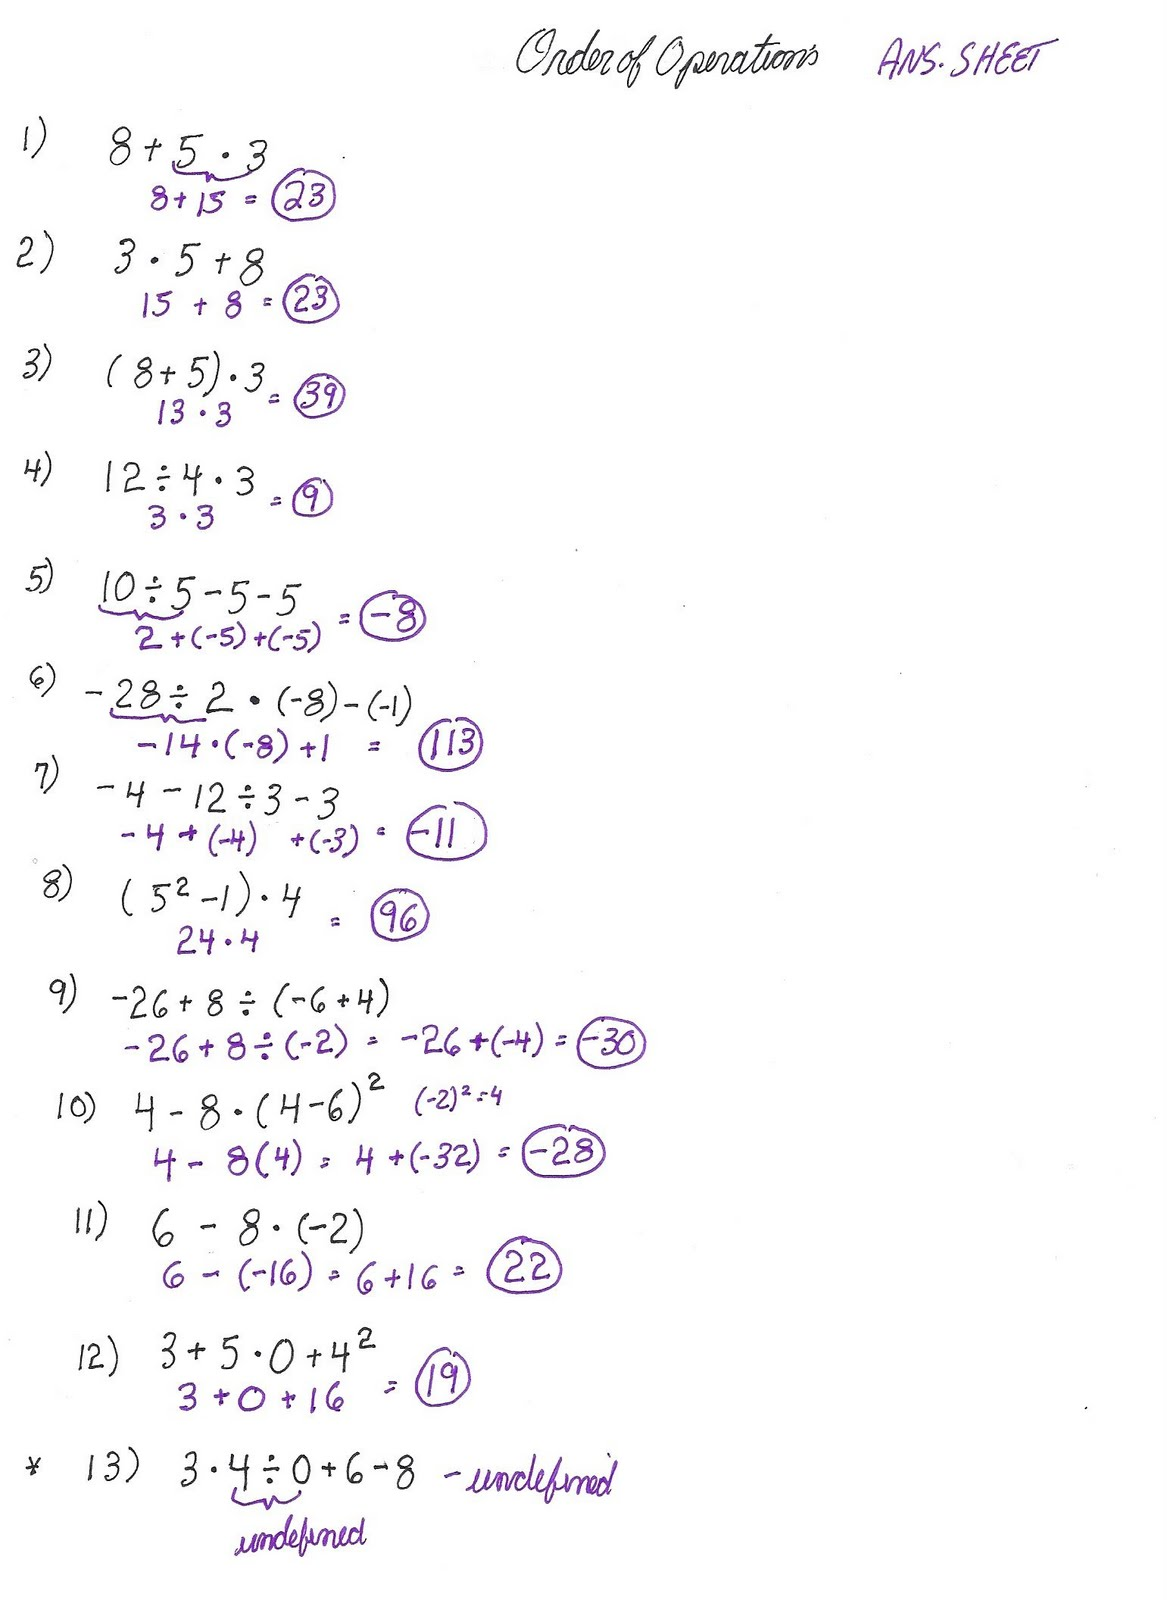 Cobb Adult Ed Math: Order of Operations Worksheet Solutions